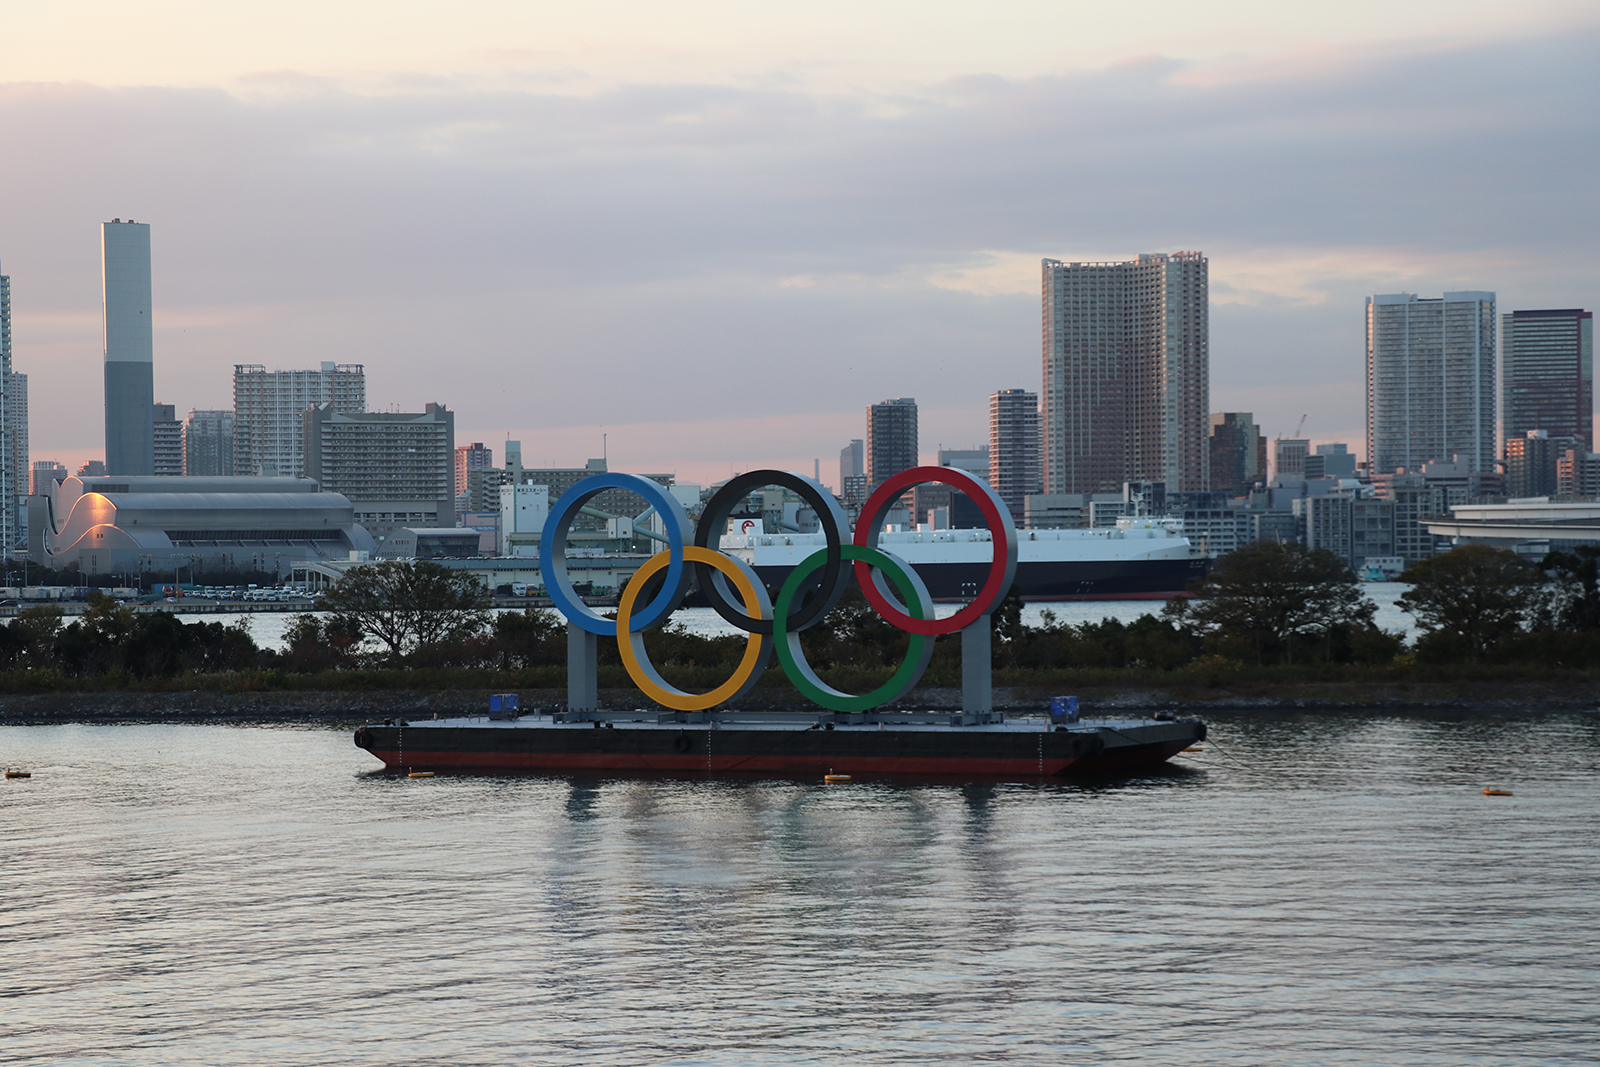 The floating monument, consisting of the Olympic rings, placed in Tokyo Gulf, as a symbol of the 2020 Tokyo Olympics and Paralympic Games, in Tokyo, on December 1.